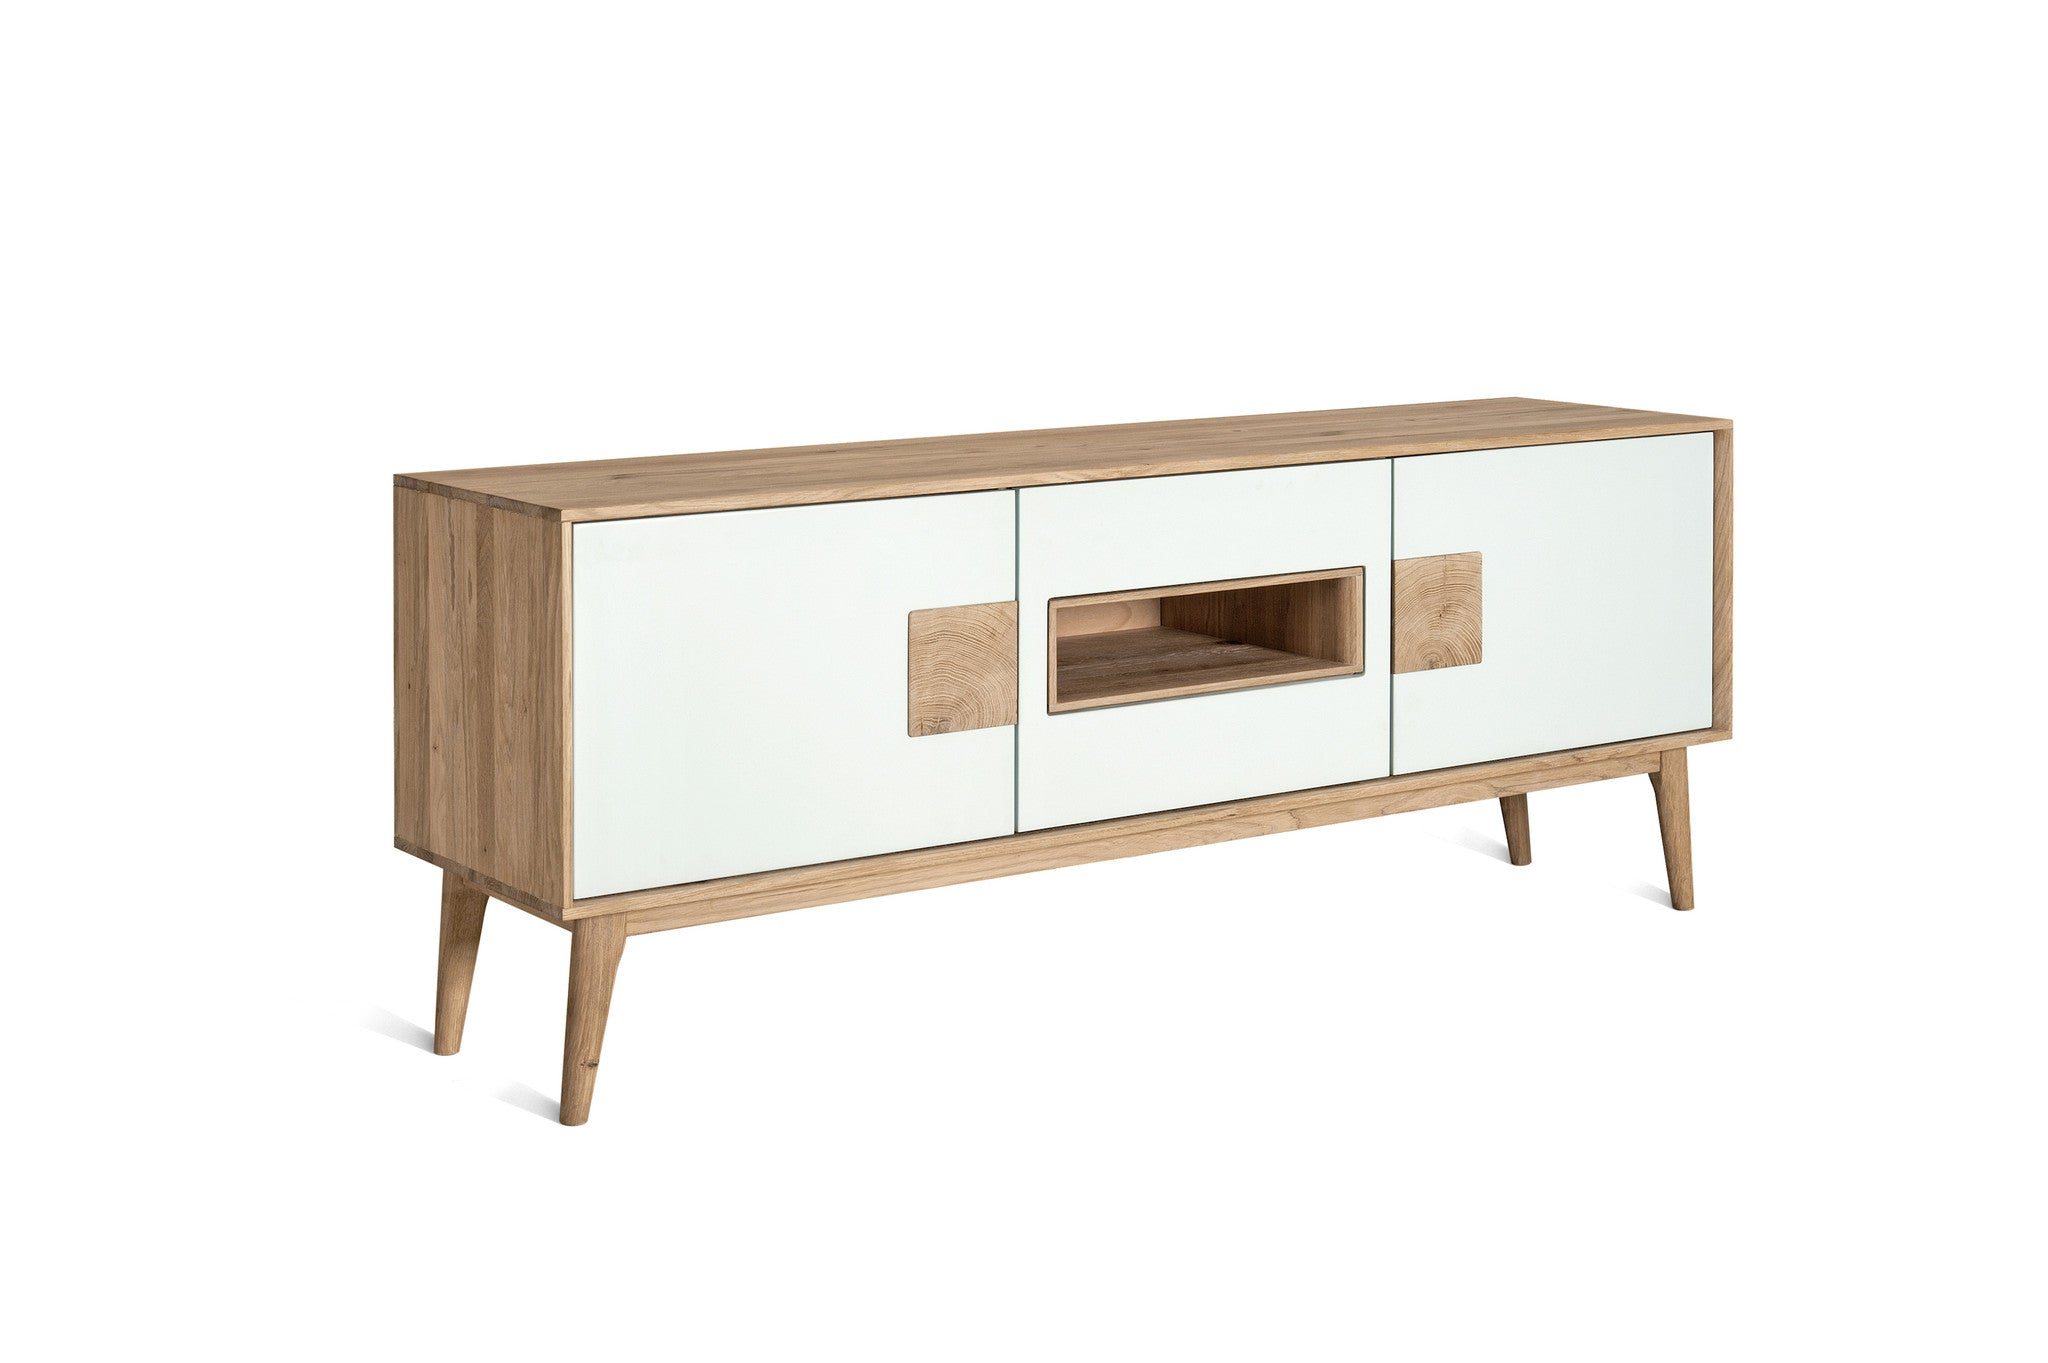 eilert massivholz tv sideboard solidmade design furnitu. Black Bedroom Furniture Sets. Home Design Ideas